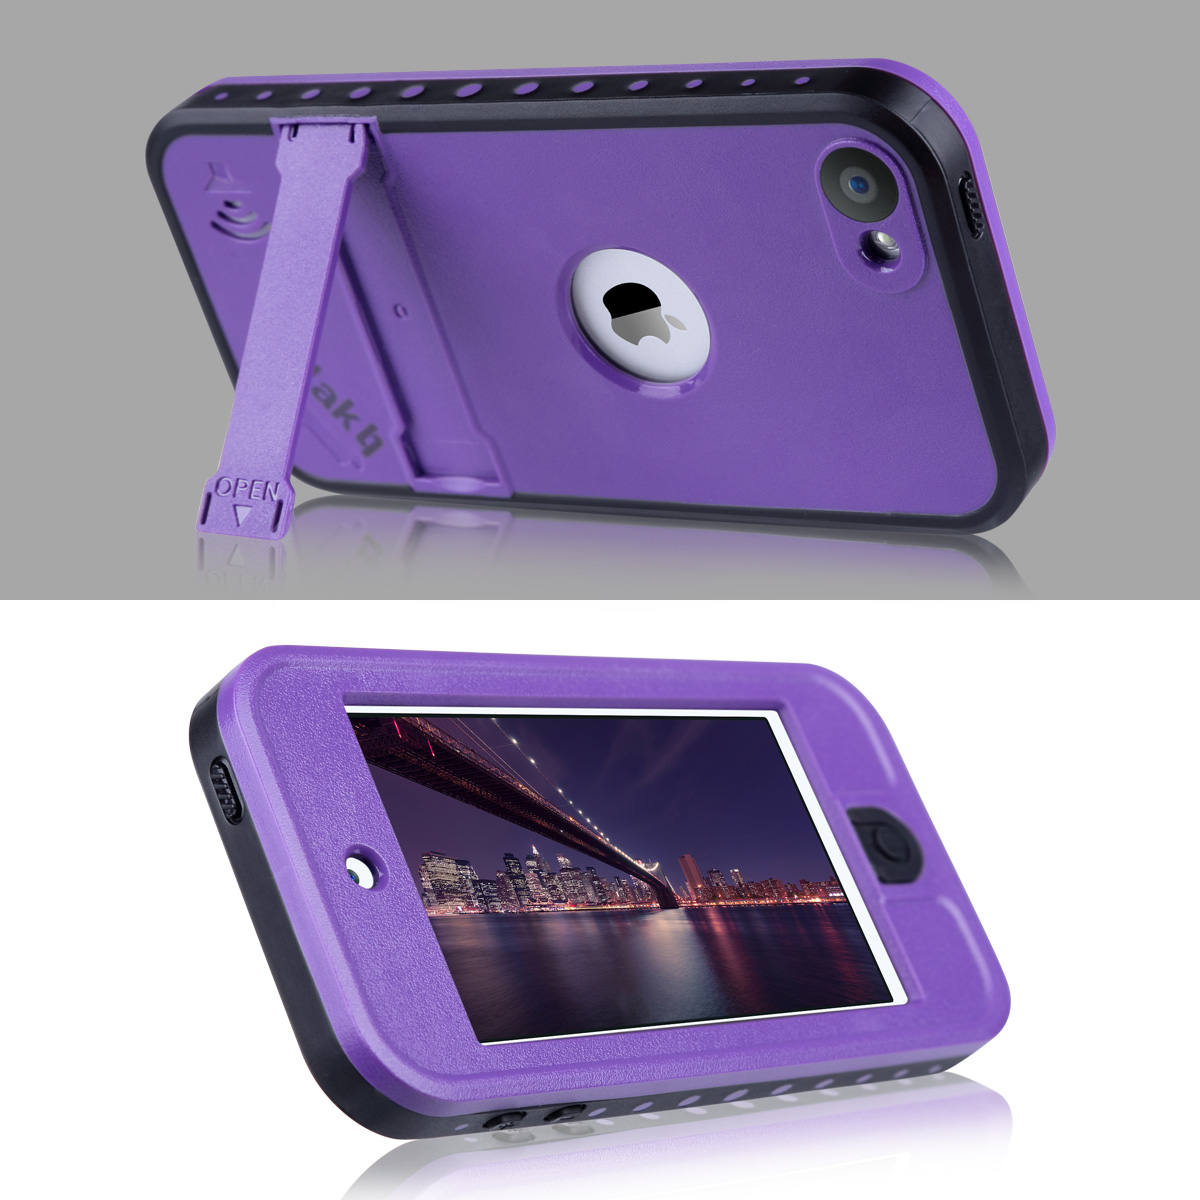 free shipping 9d0c0 bee65 iPod Touch 6th Generation Case, iPod Touch 5th Generation Case,ULAK  Waterproof Dustproof Sweatproof Cover Built-in Touch Screen with Kickstand  for ...